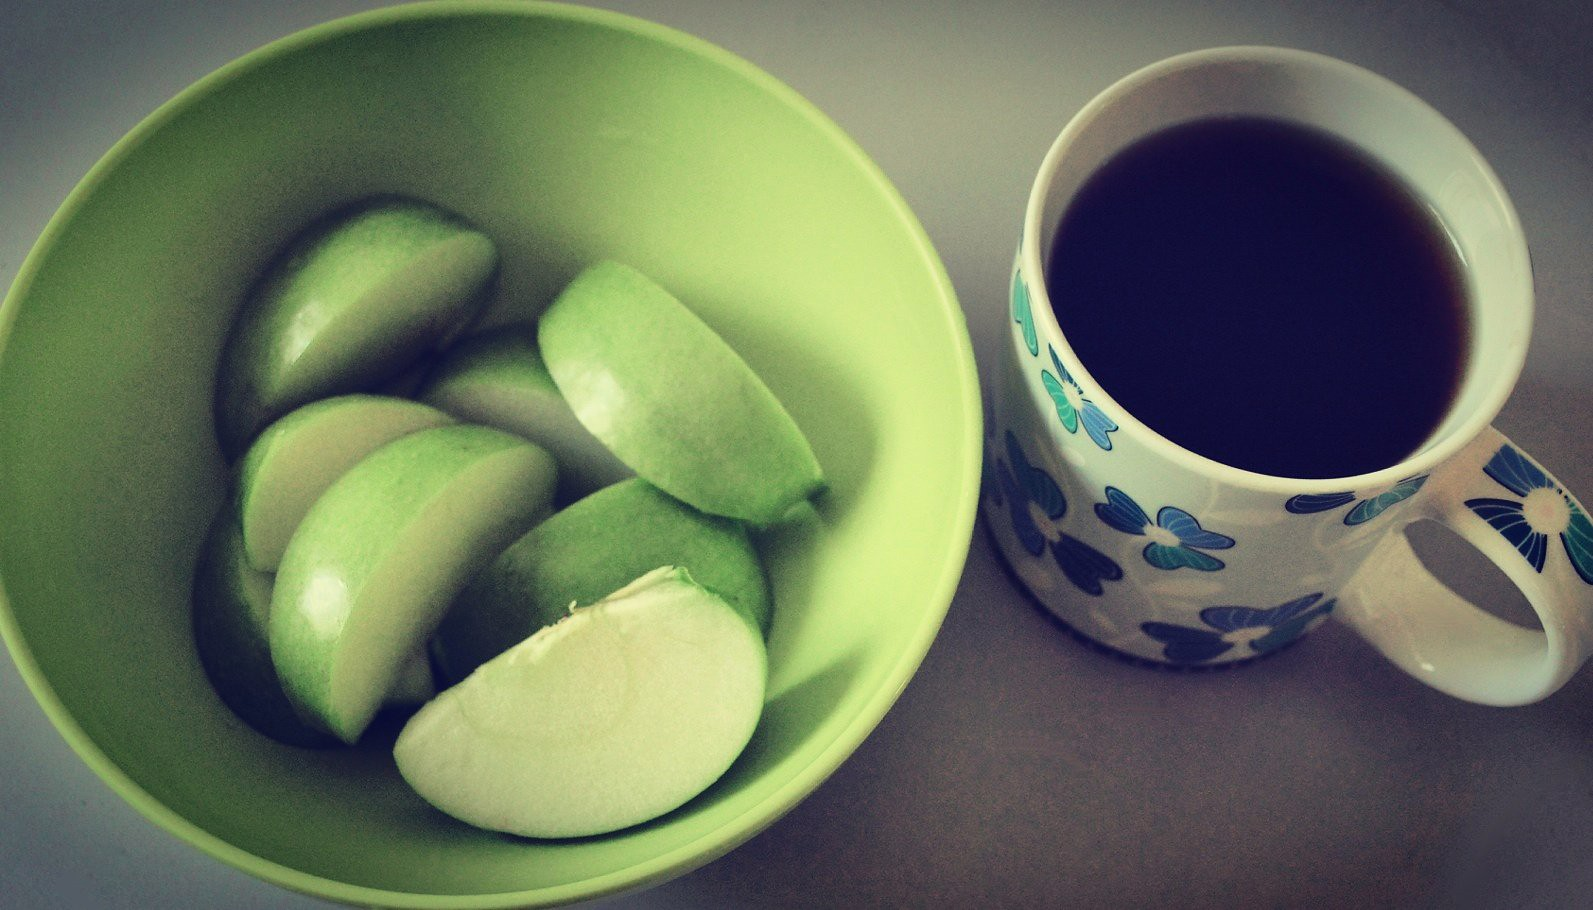 Morning bliss... green apple n black coffee...